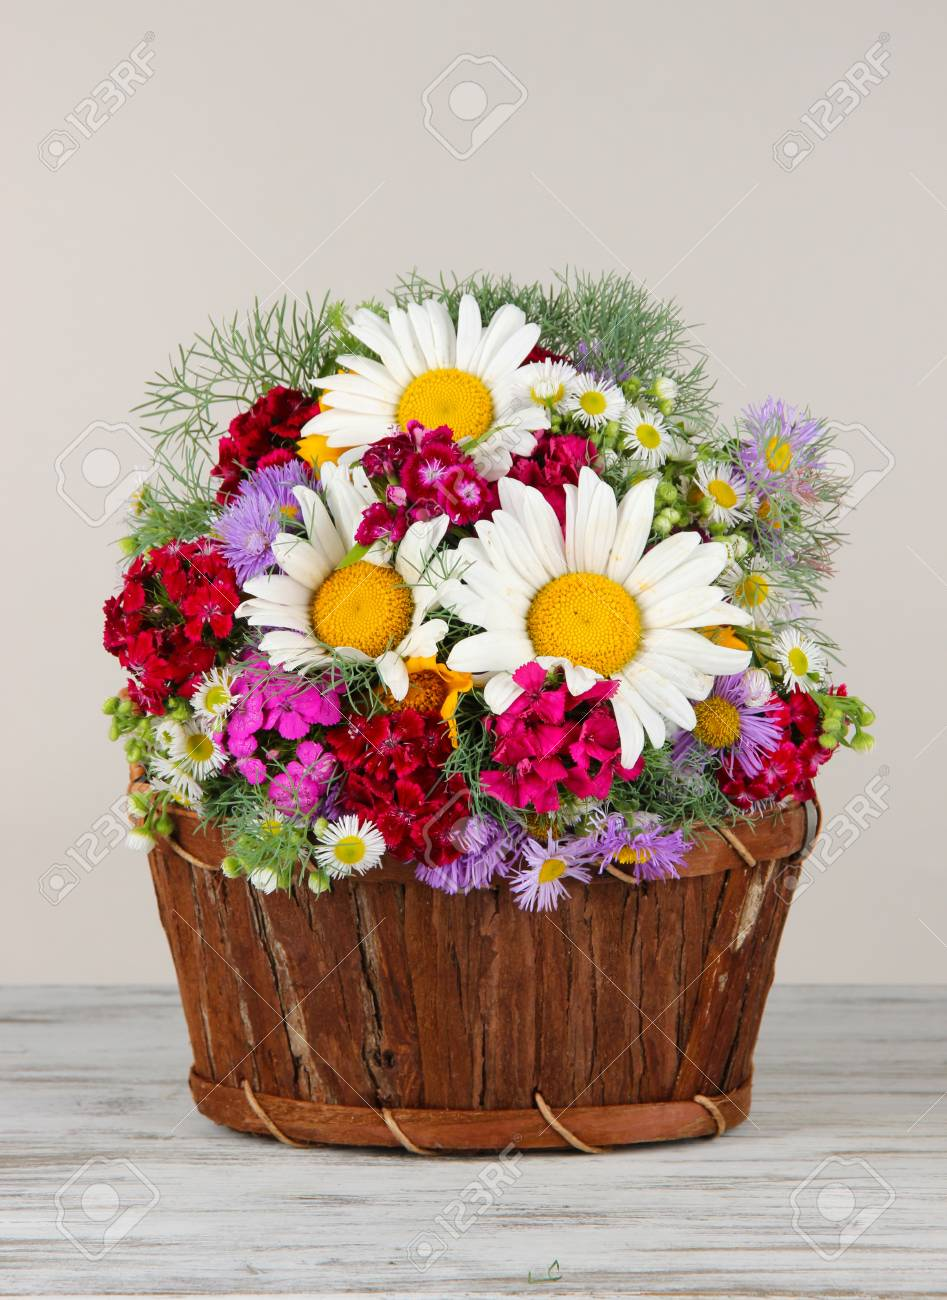 Beautiful Bright Flowers In Wooden Basket On Table On Gray